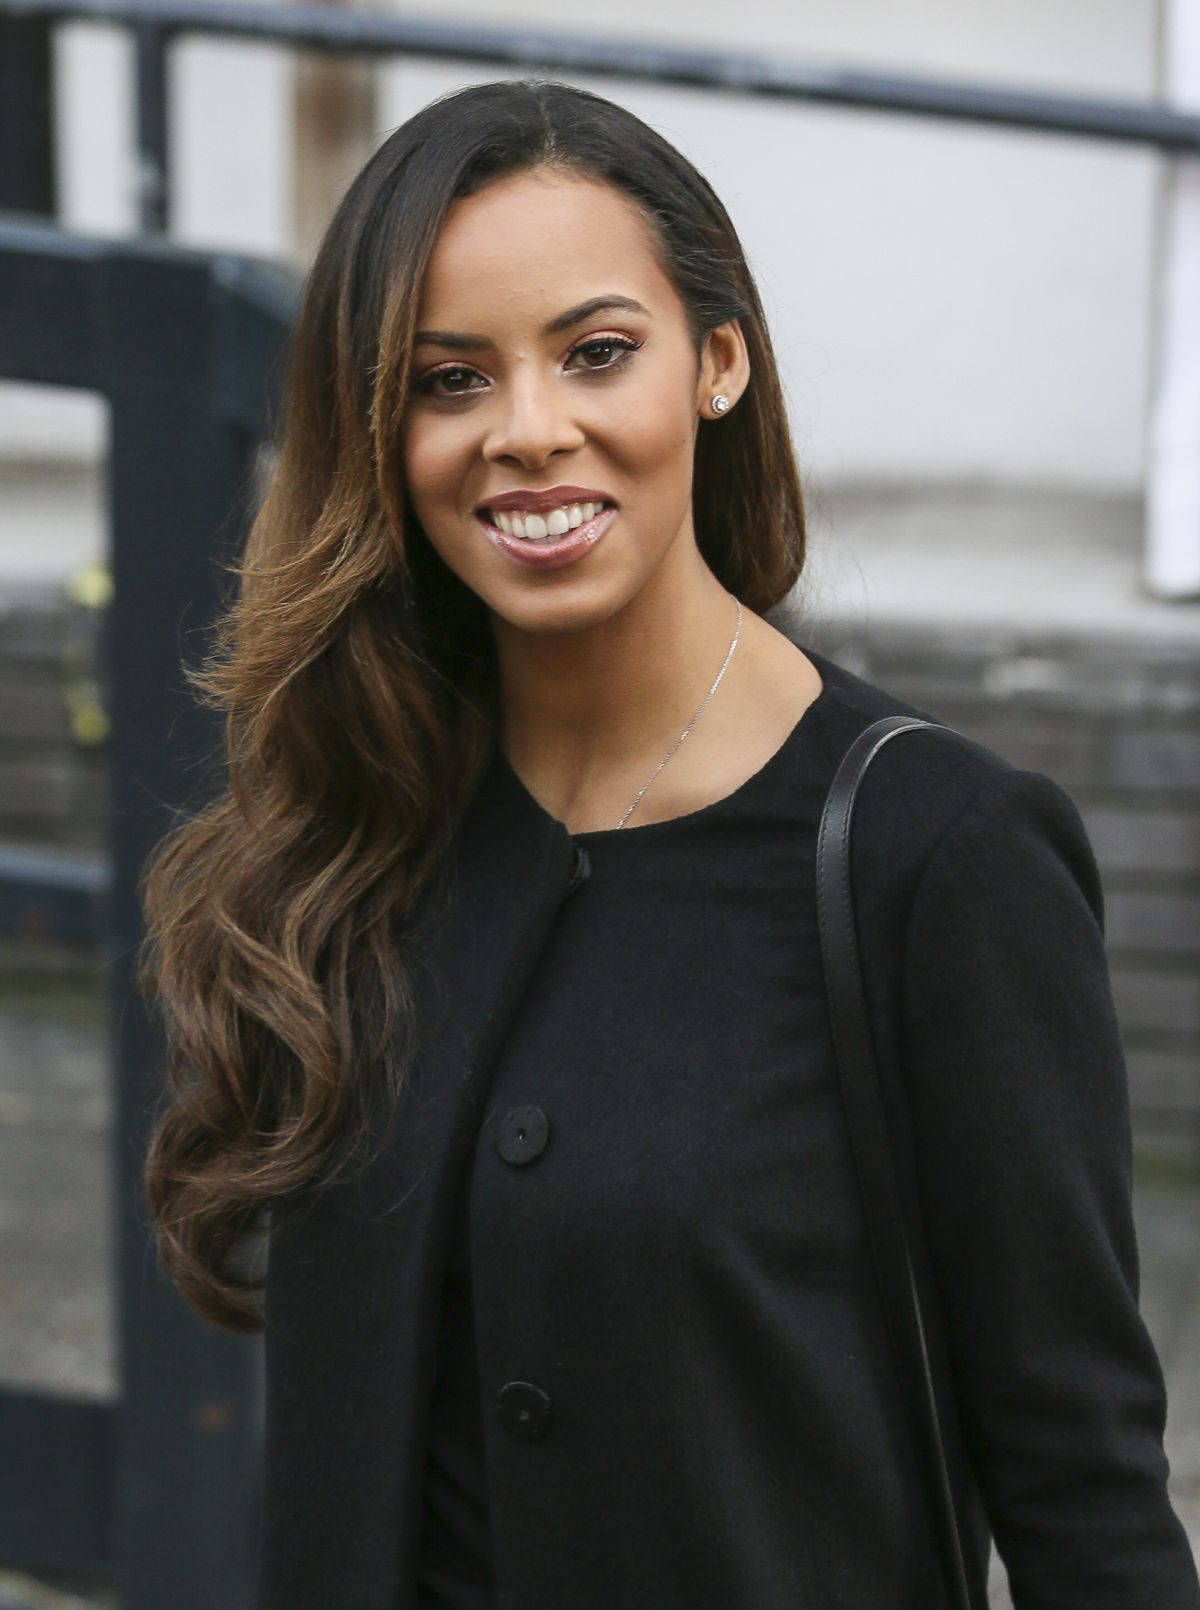 Rochelle Humes (The Saturdays) Outside The ITV Studios In London